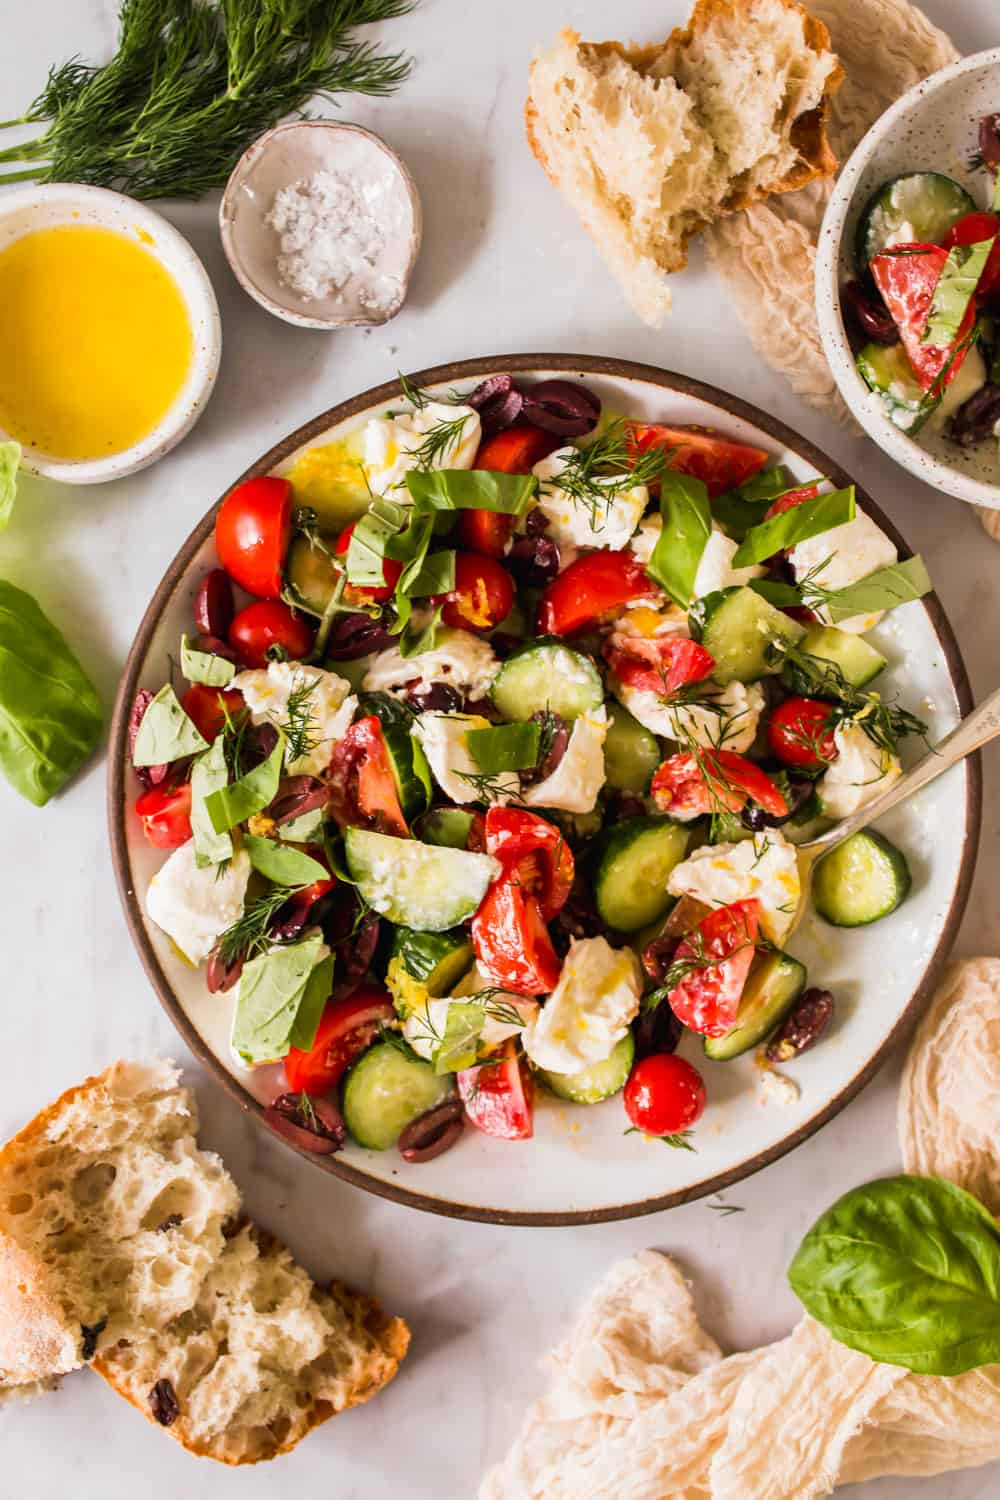 tomato, cheese, and cucumber salad in a large white bowl next to torn pieces of bread